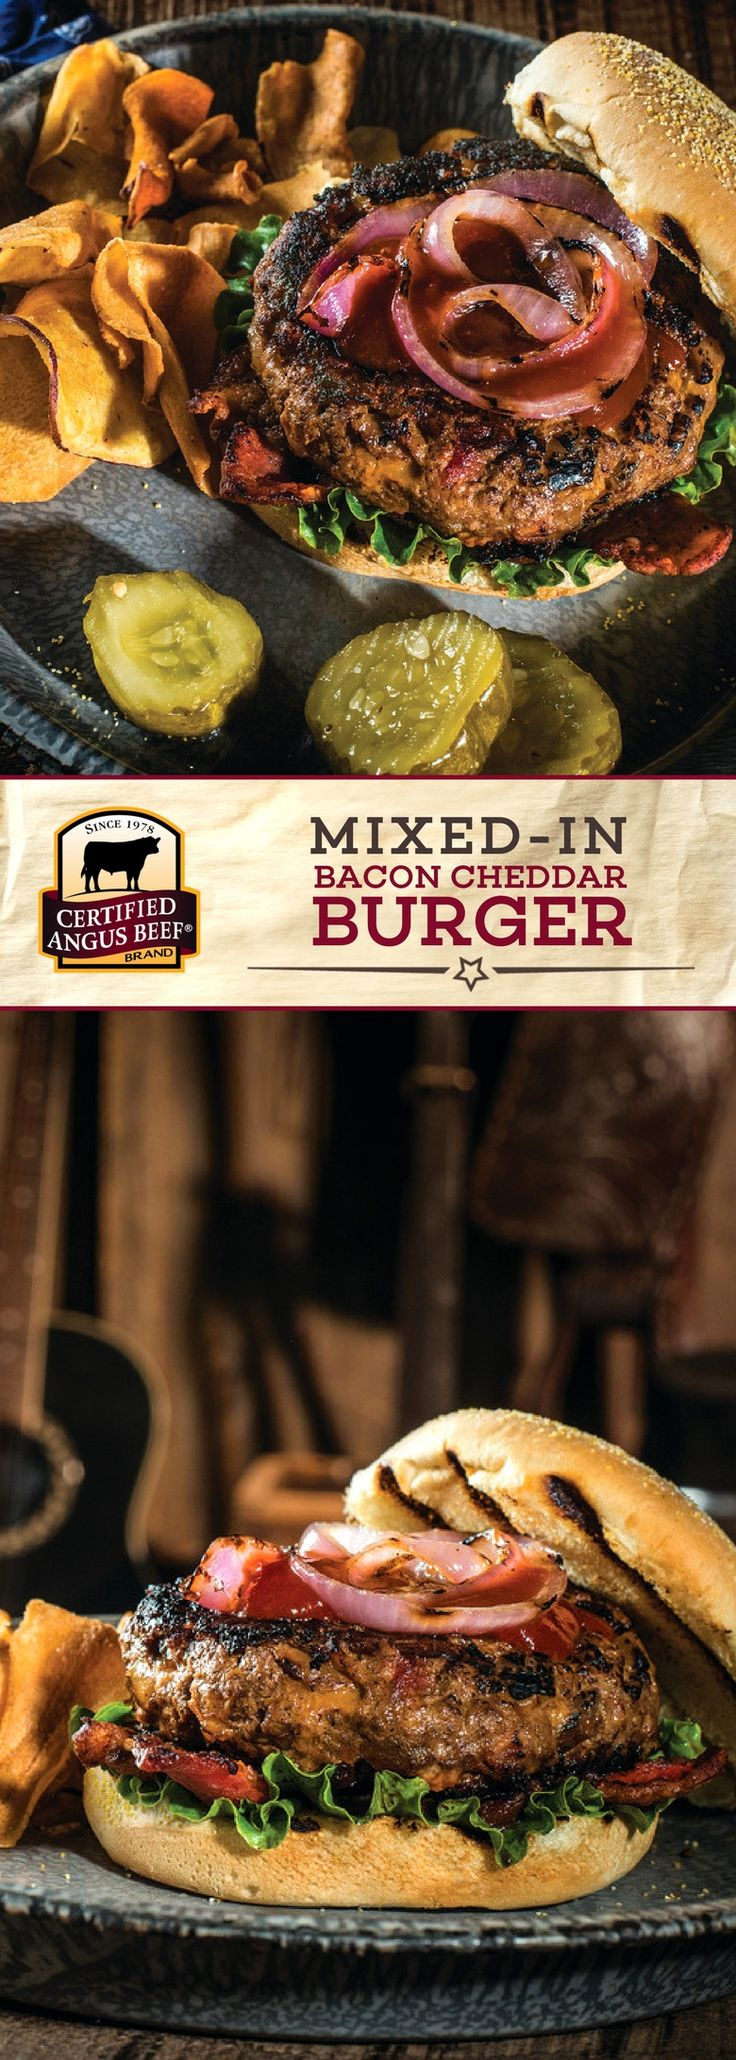 Certified Angus Beef®️️️️ brand Mixed-in Bacon Cheddar Burger uses the best ground beef for a FLAVORFUL burger! This DELICIOUS recipe is made with a BOLD sauce mix, including barbecue sauce, Worcestershire, and ancho chili powder. Mixing the onions and cheddar right into the beef really makes this burger stand out!